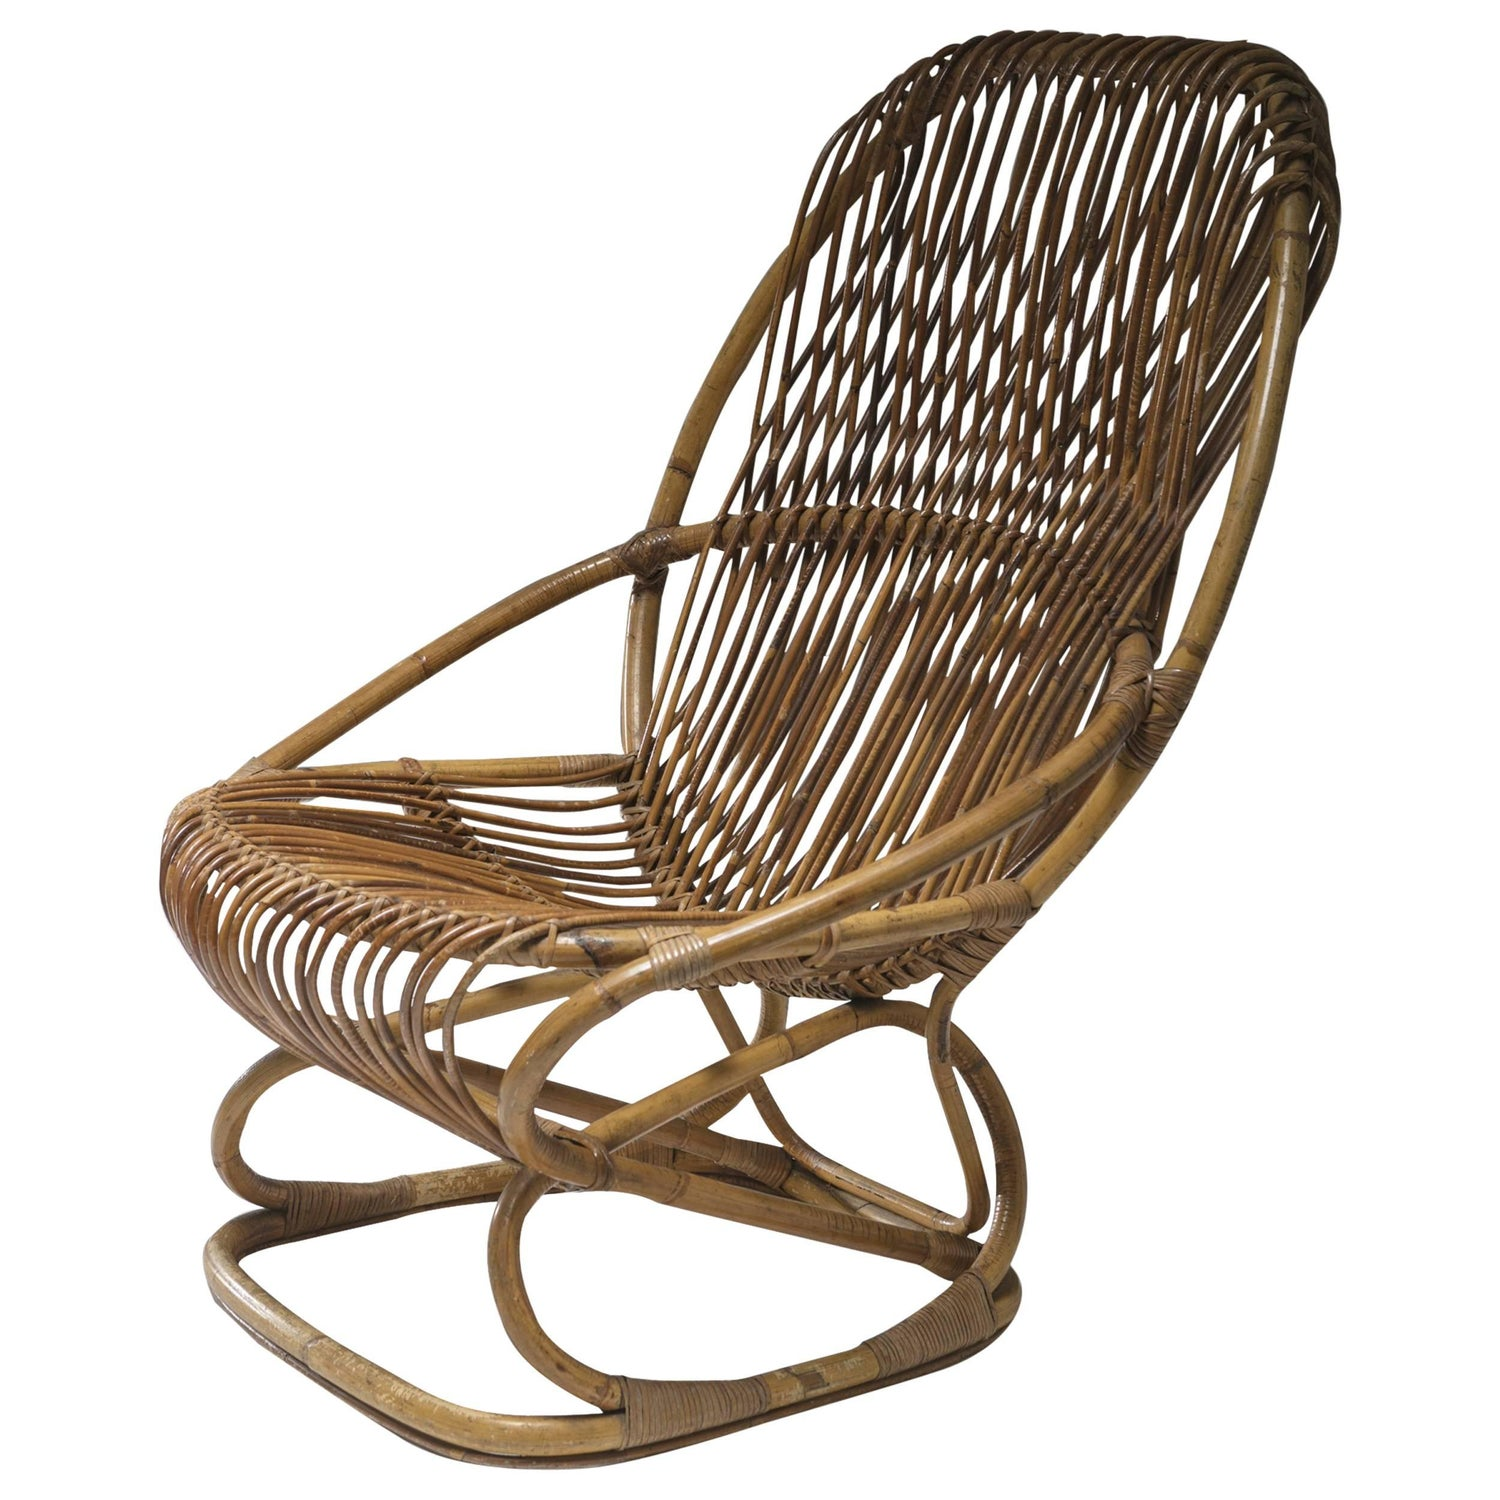 clearance chairs chair irenerecoverymap indoor random wicker lounge white costco rattan chaise